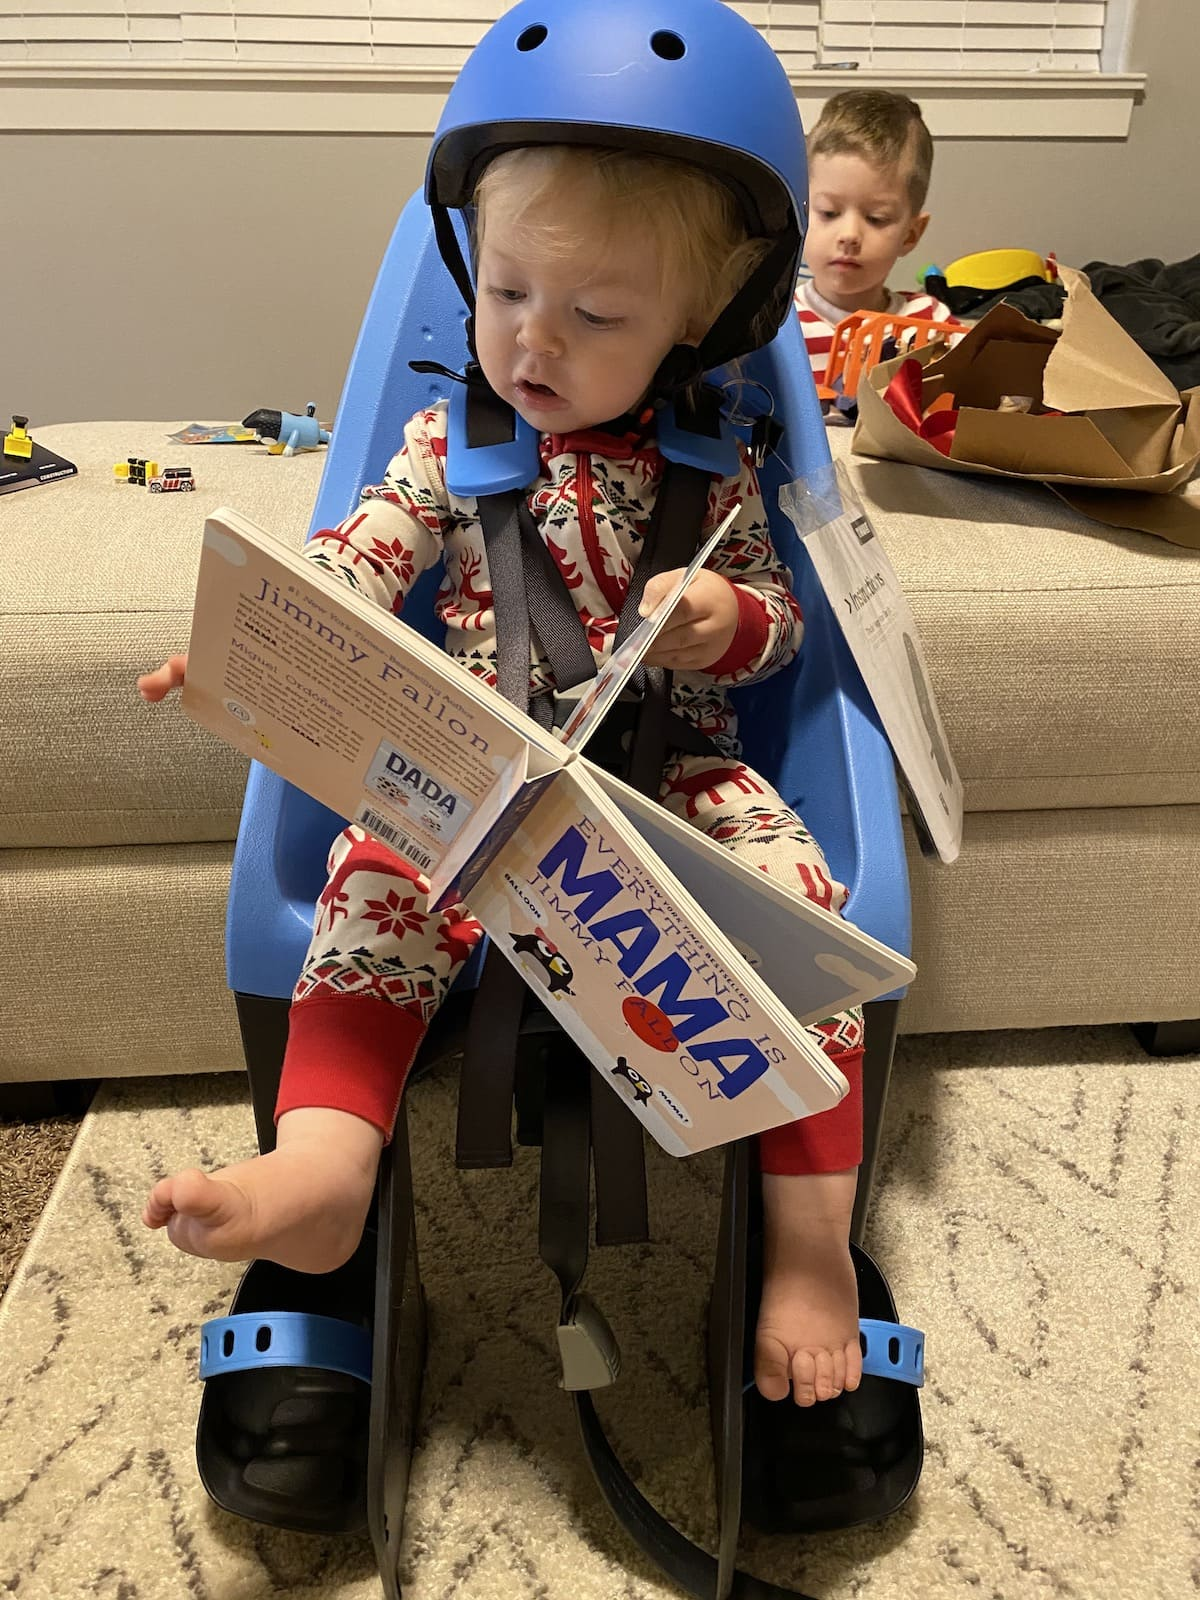 baby reading book in bike seat